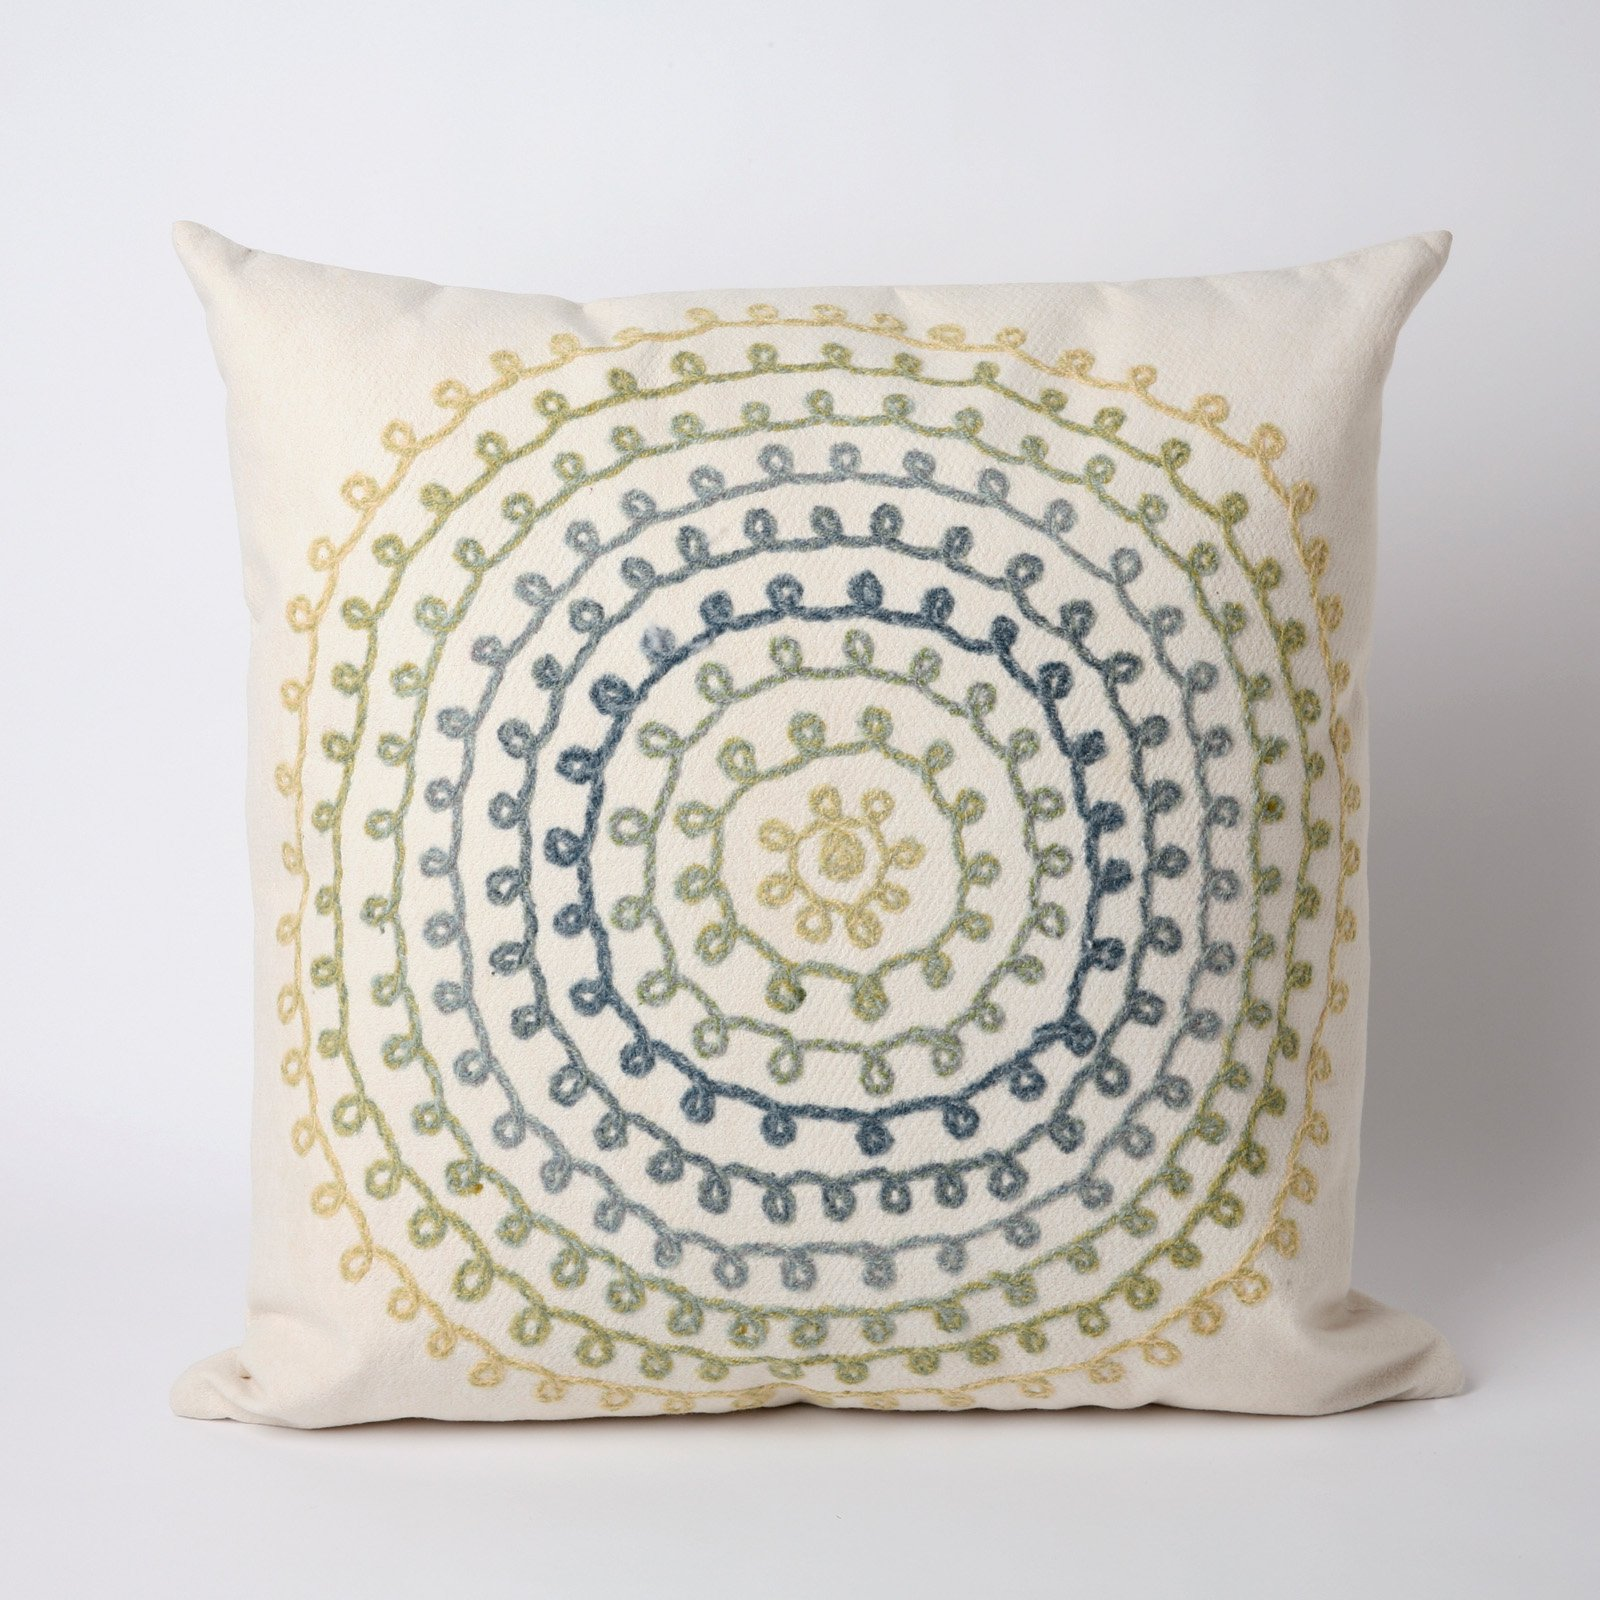 Liora Manne Ombre Threads Indoor / Outdoor Throw Pillow